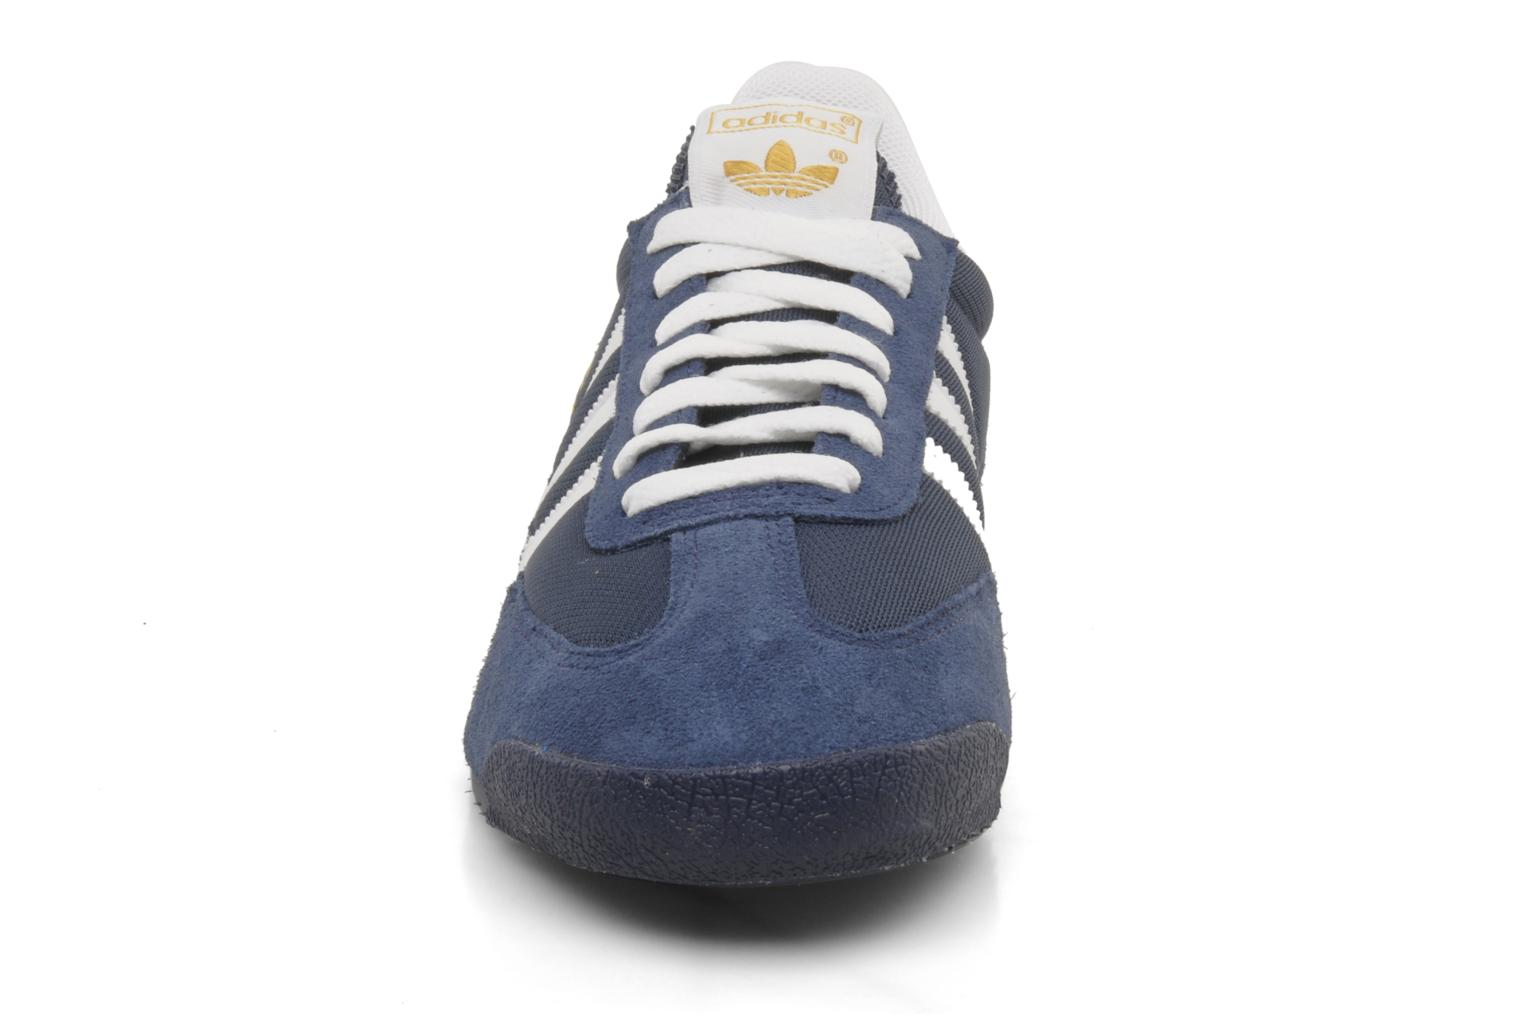 Dragon New Navy - White - Metallic Gold